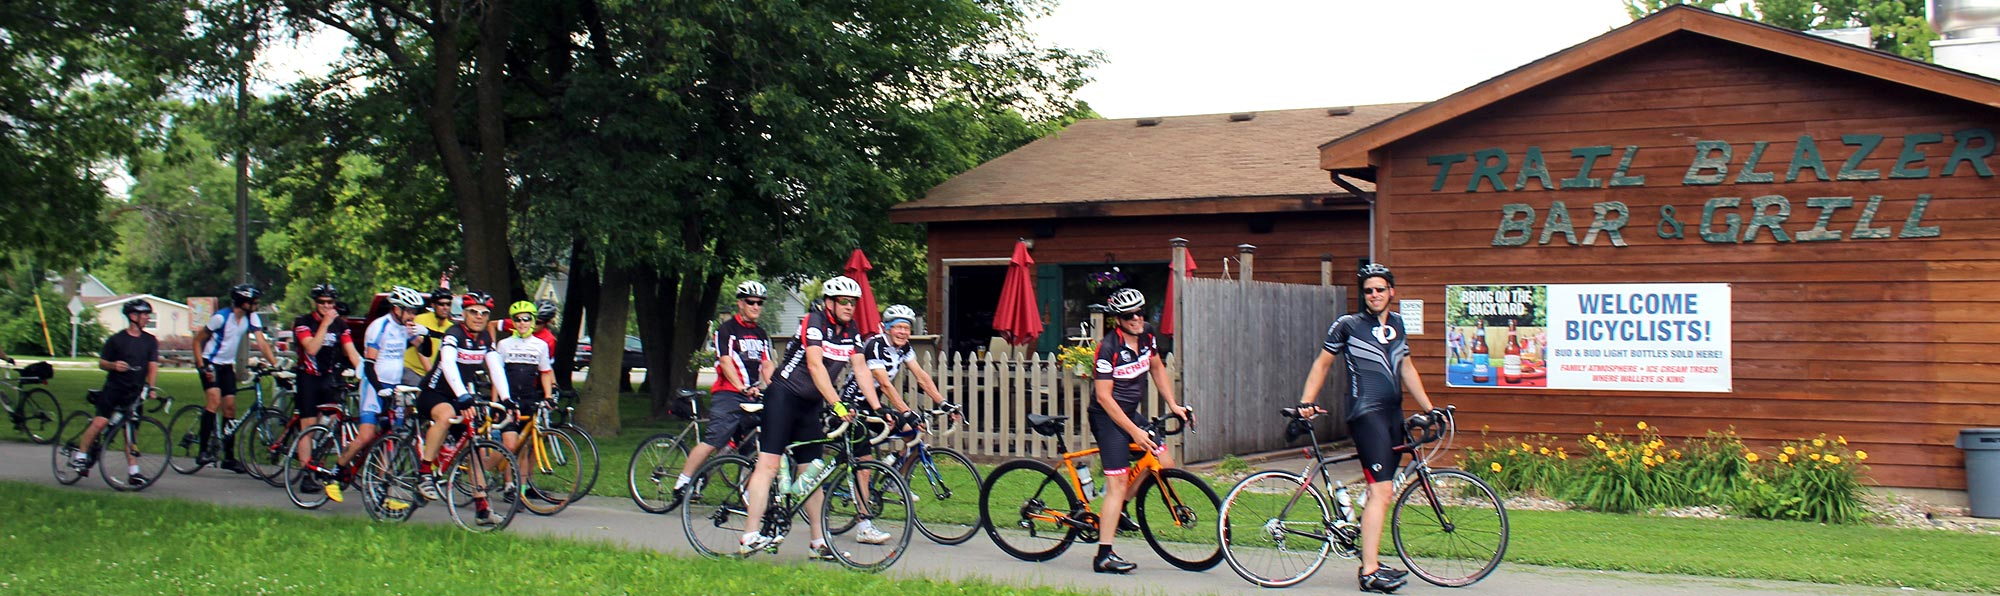 Group of bicyclists on the Sakatah Trail near Trailblazer Bar & Grill